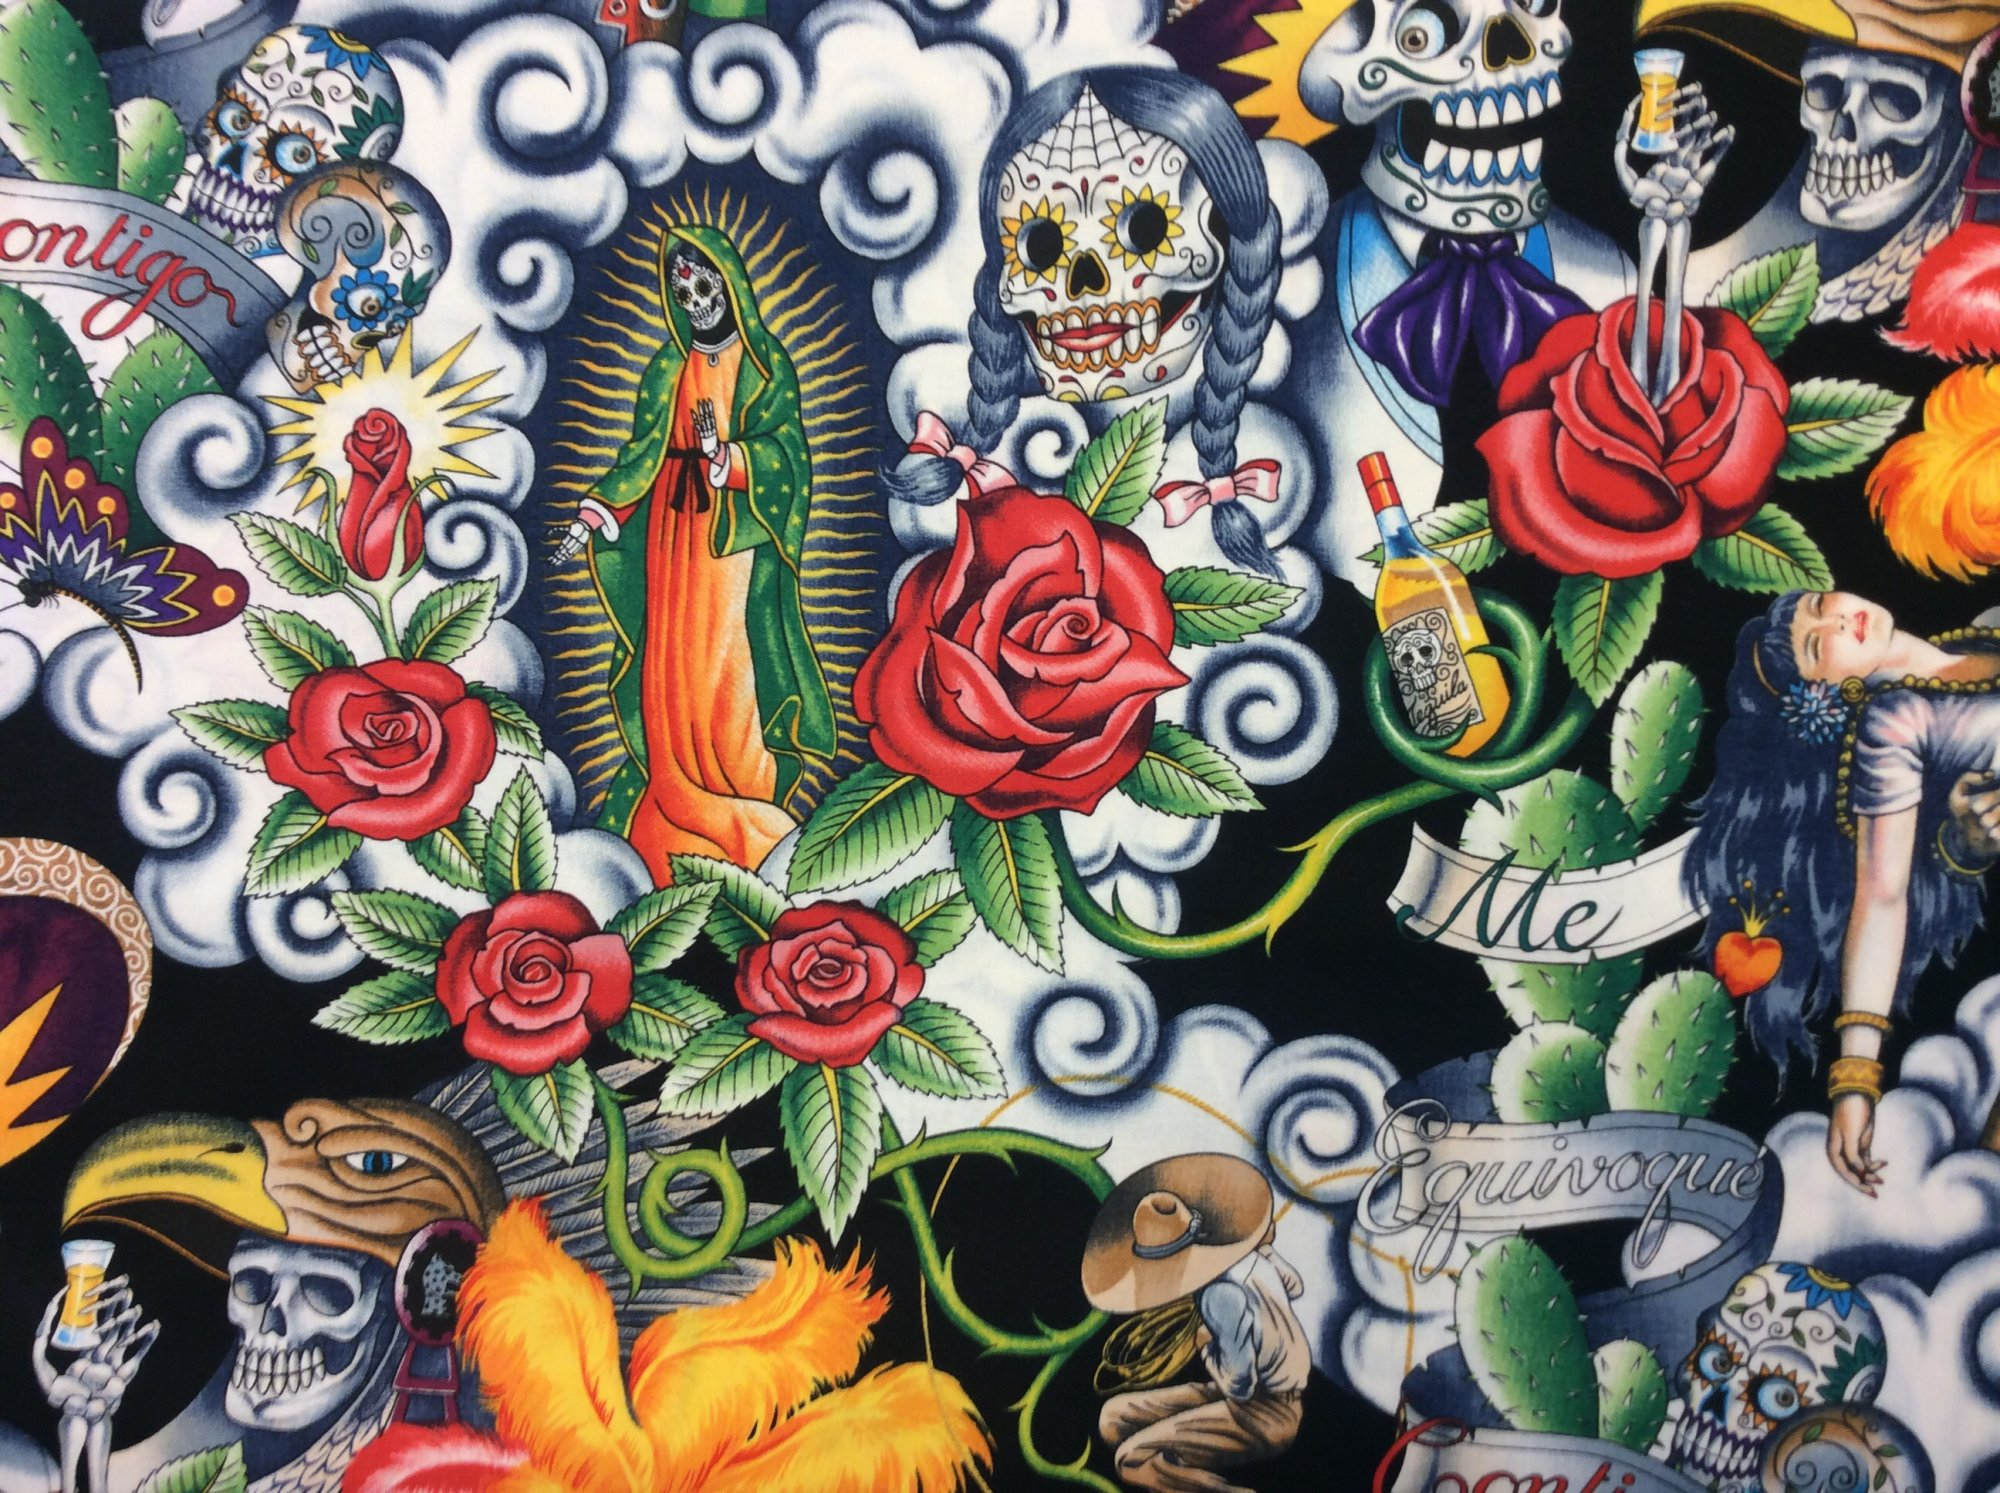 AH132 Contigo Day of the Dead Aztec Warrior Guadalupe Skeleton Rose Skull Mexico Cotton Fabric Quilt Fabric